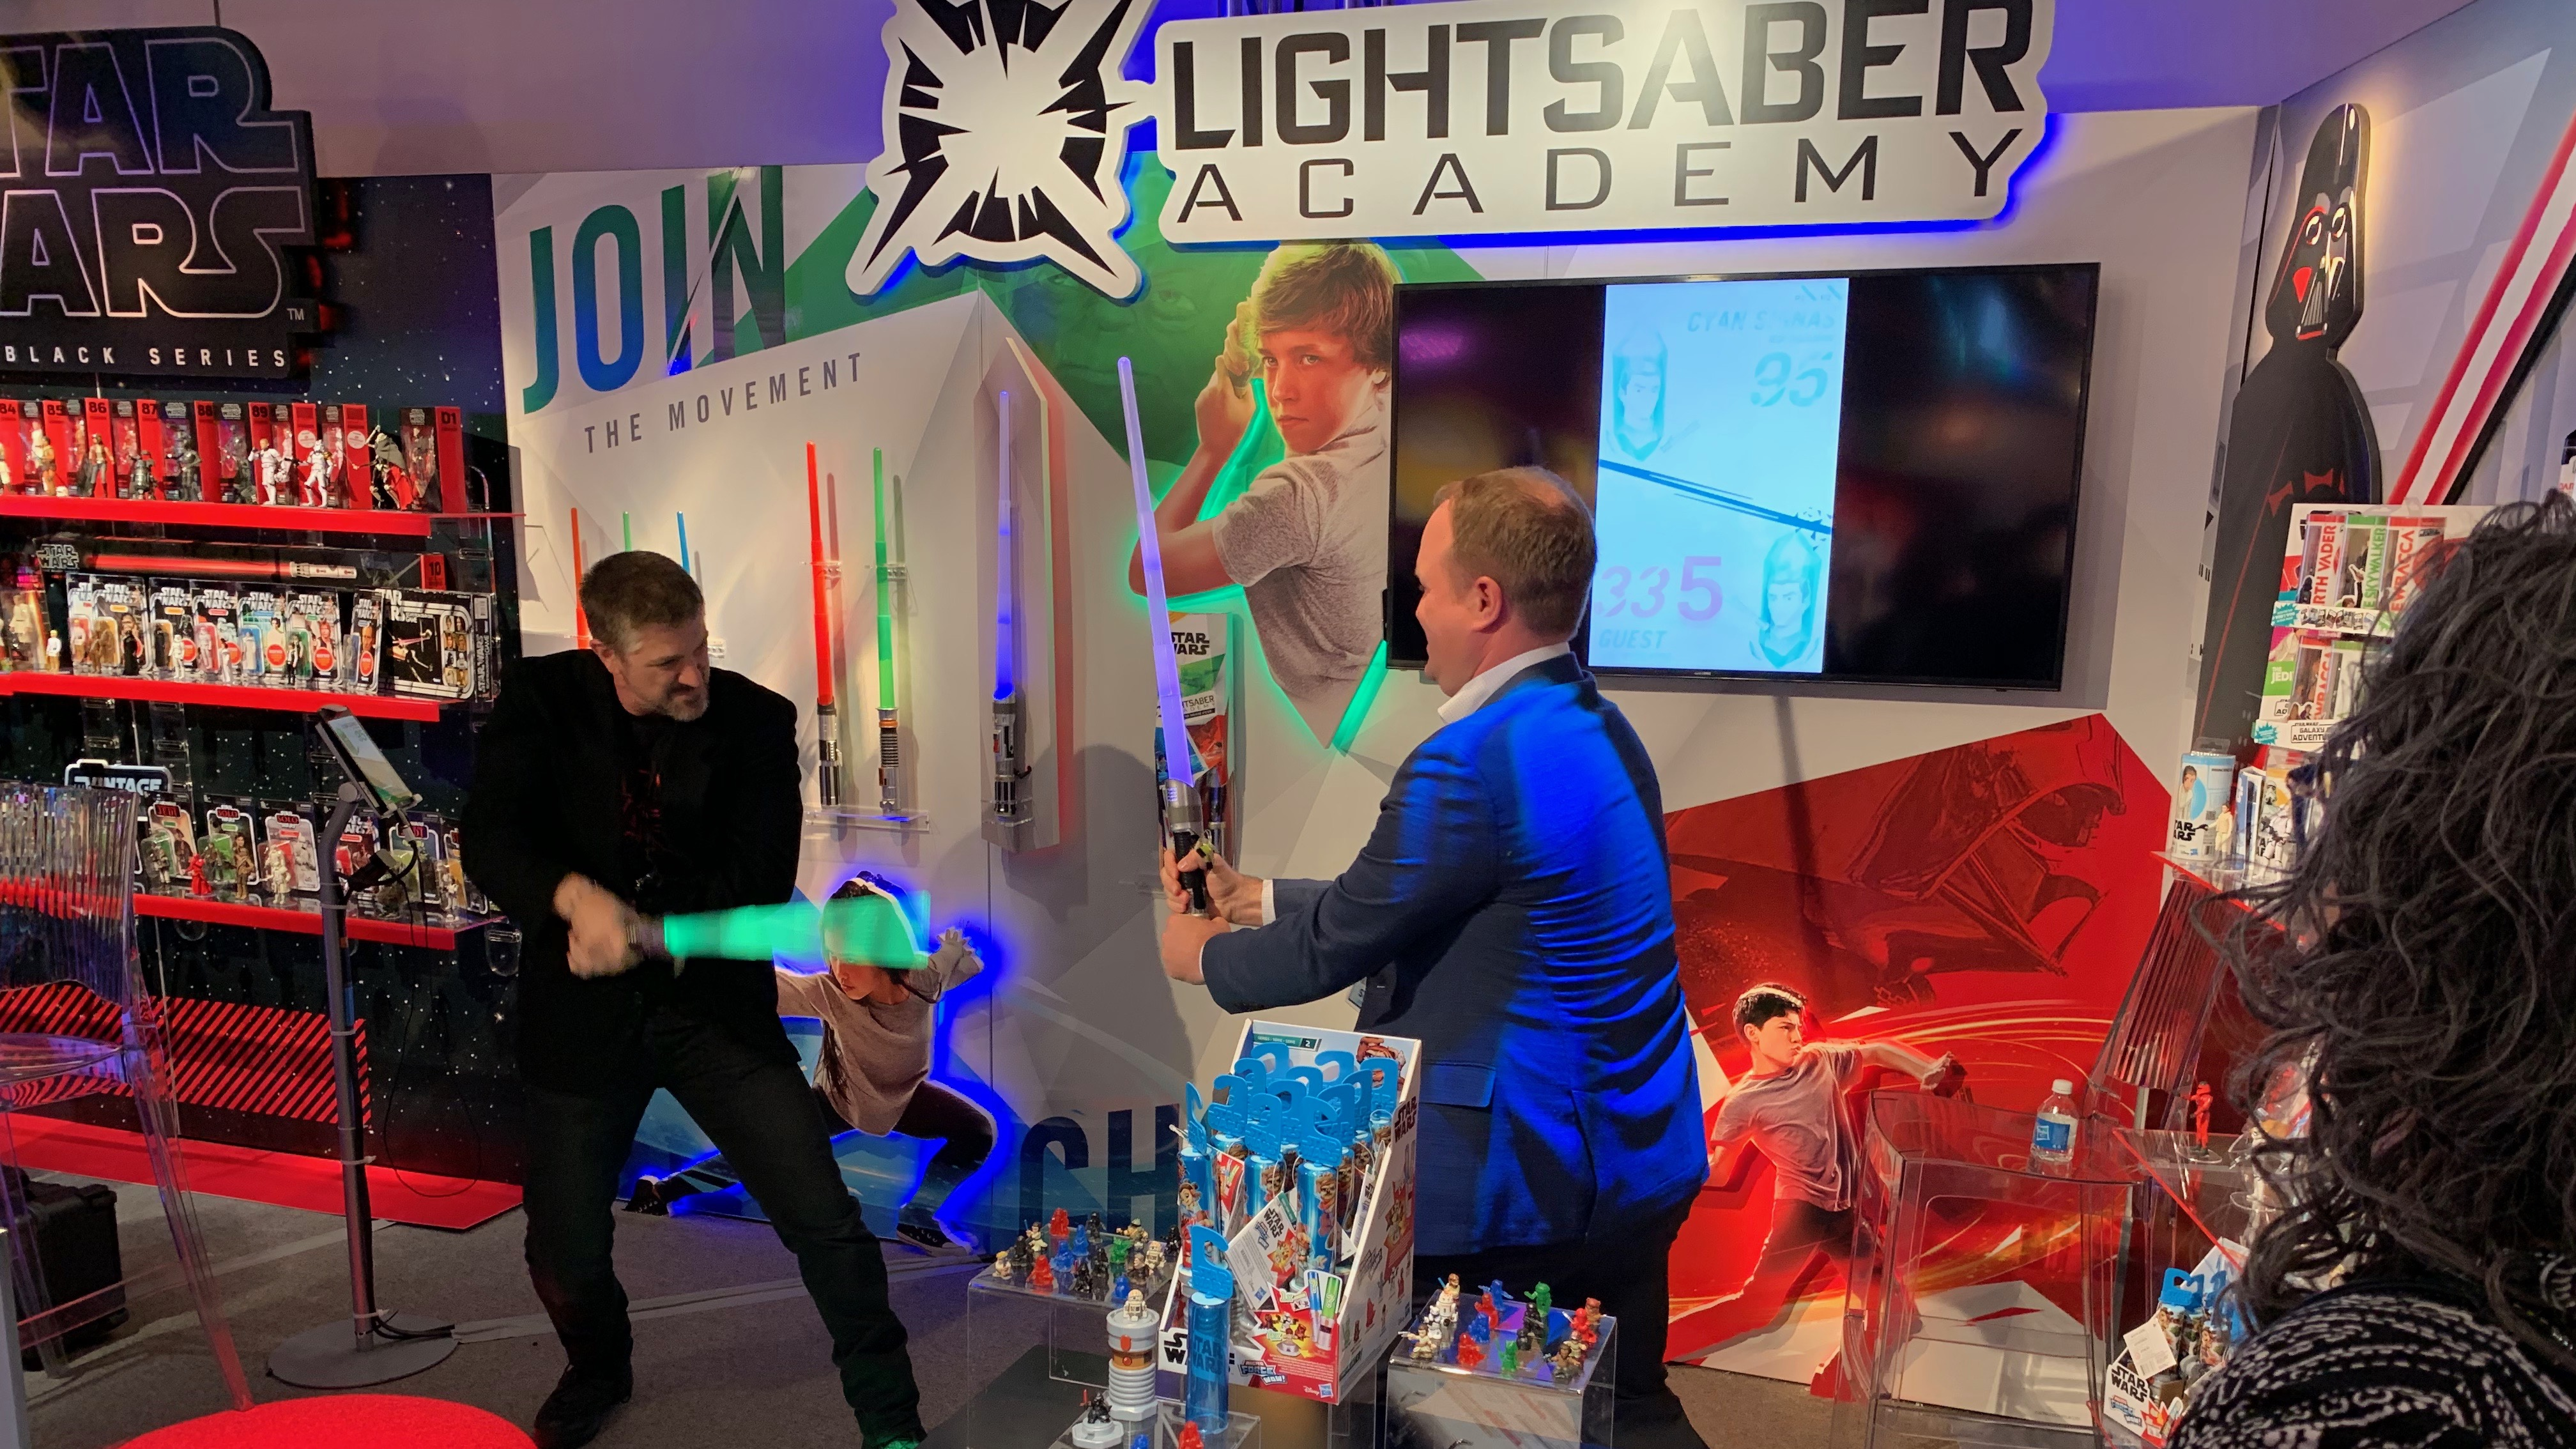 BBPP3donYbEahi5T6C6NxY - Tech toys 2019: the best new games and gadgets from the NYC Toy Fair